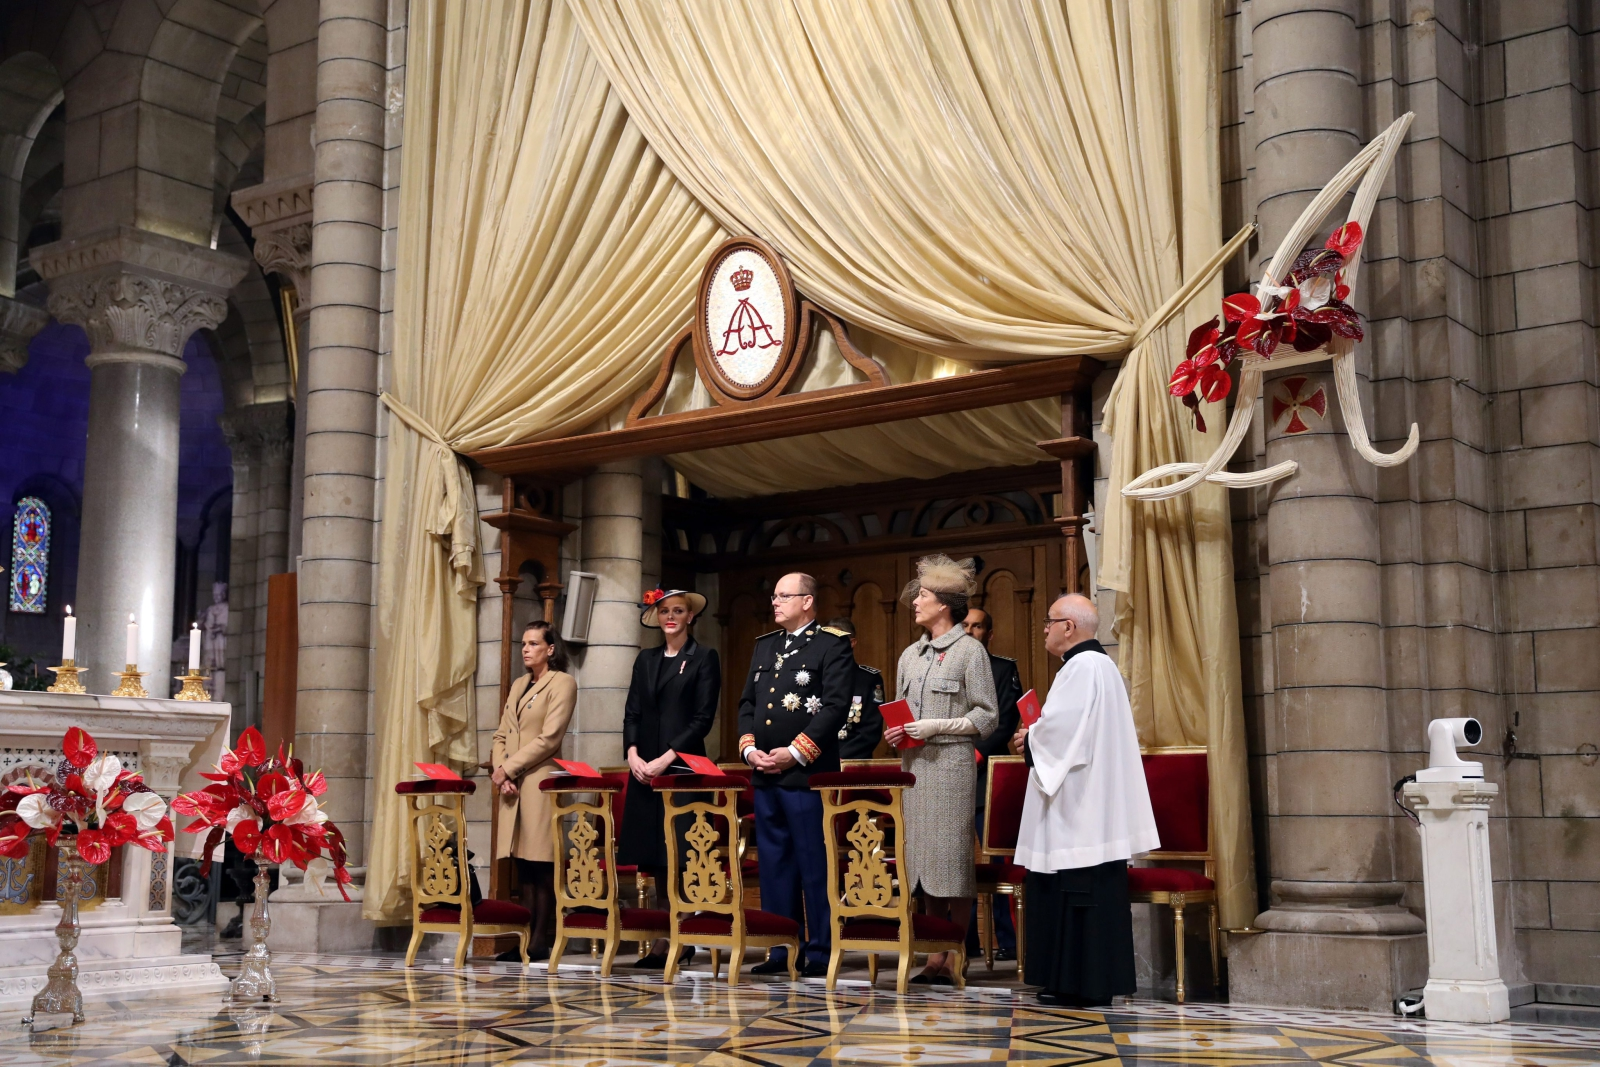 epa05638315 (L-R) Princess Stephanie of Monaco, Princess Charlene of Monaco, Prince Albert II of Monaco and Princess Caroline of Hanover attend a mass at the Saint Nicholas cathedral during the celebrations marking Monaco's National Day, in Monaco, 19 November 2016.  EPA/VALERY HACHE/POOL MAXPPP OUT  Dostawca: PAP/EPA.